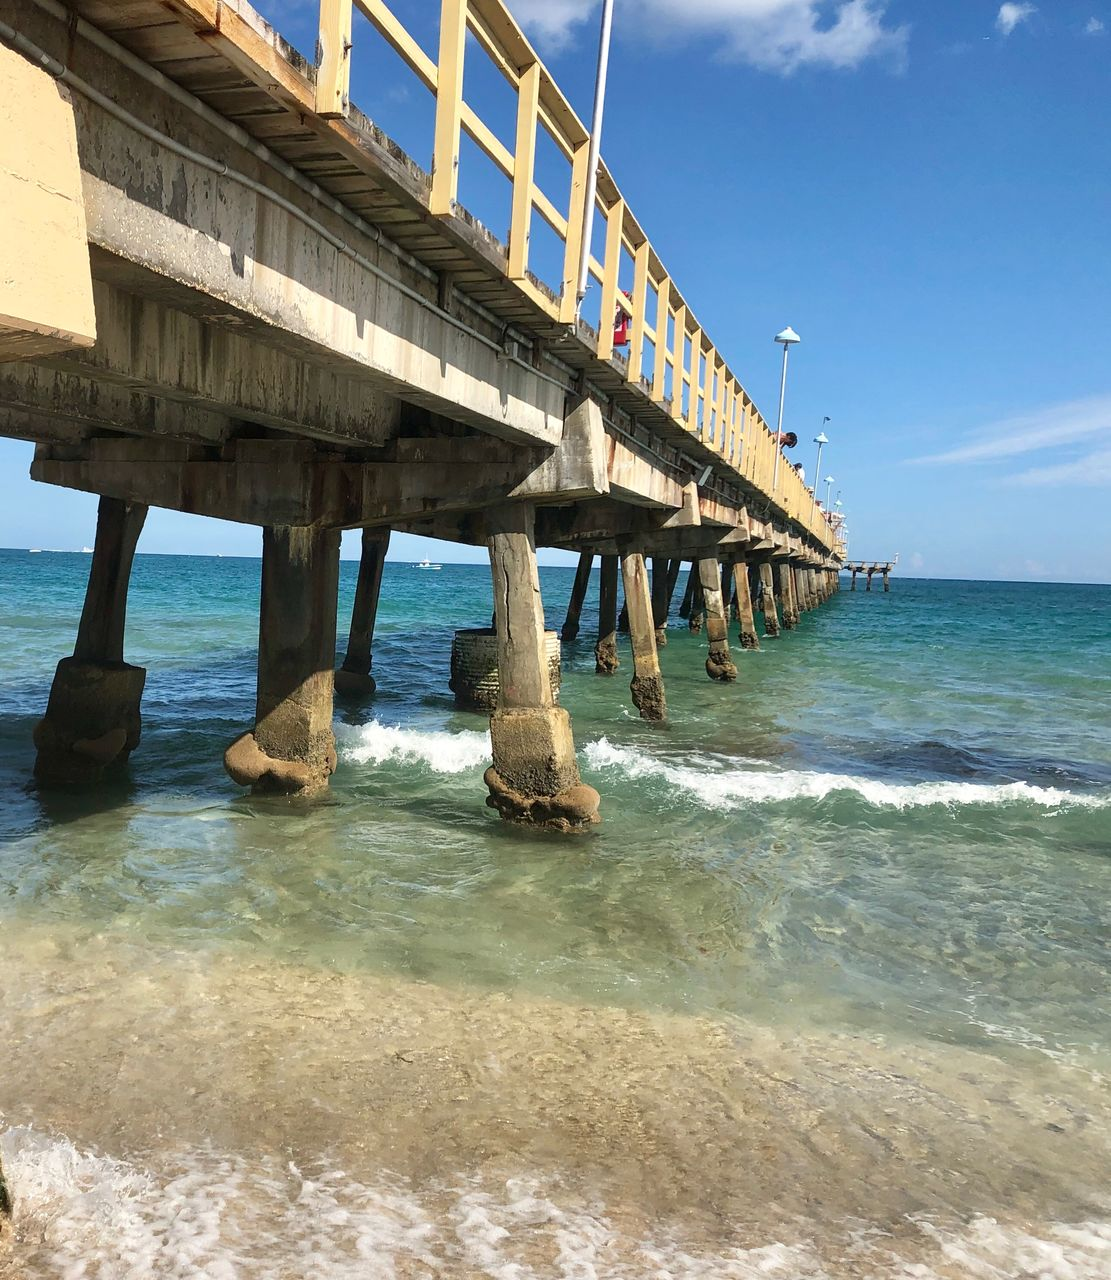 water, sea, built structure, sky, architecture, land, horizon over water, day, beach, nature, scenics - nature, connection, horizon, beauty in nature, bridge, pier, architectural column, wave, motion, no people, bridge - man made structure, outdoors